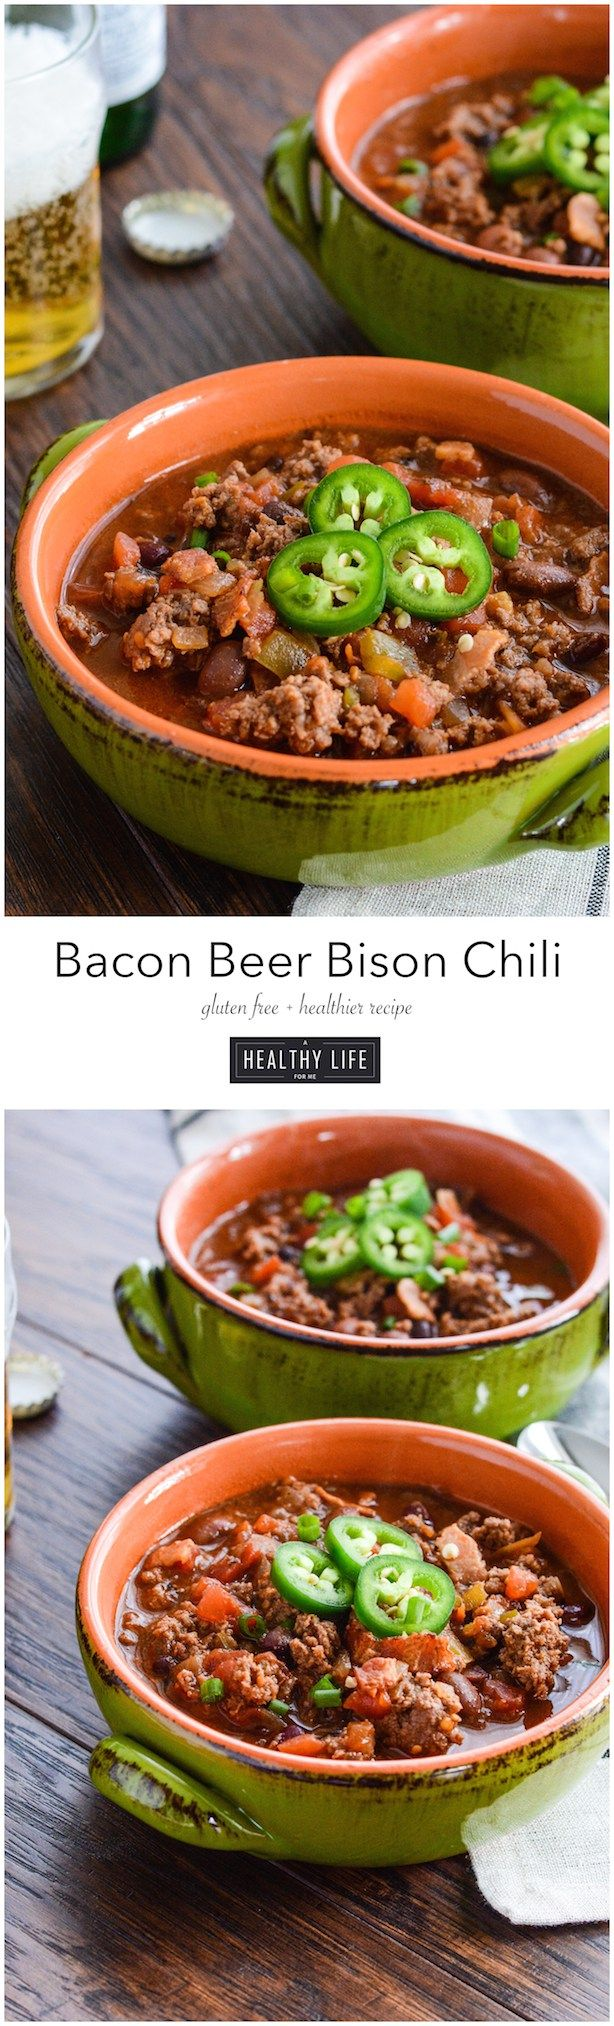 Bacon Beer Bison Chili is a delicious easy gluten free recipe that is perfect for weeknight dinner in the kitchen- ahealthylifeforme.com